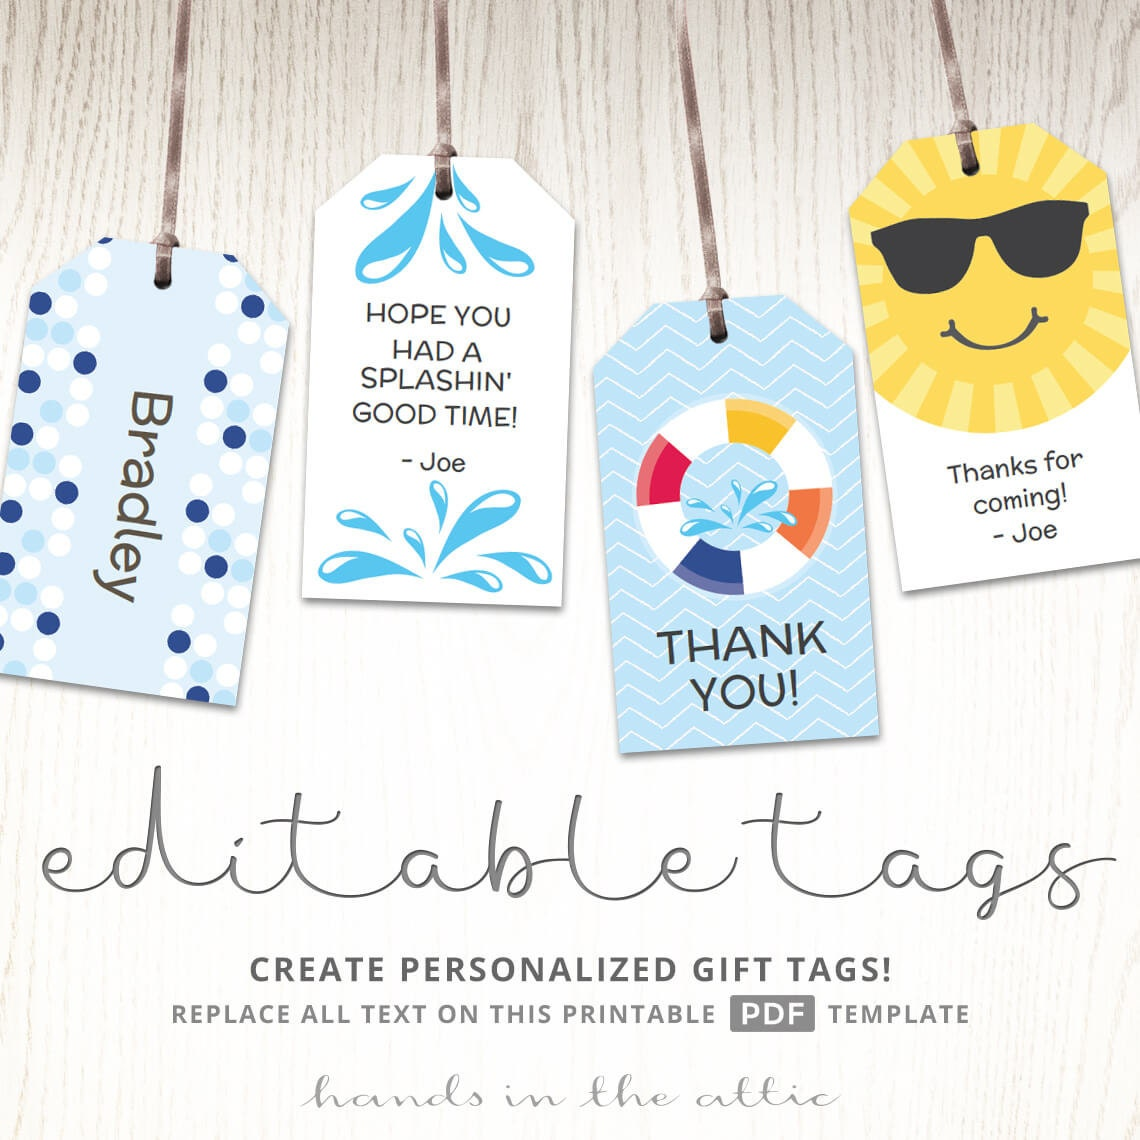 Pool Gift Ideas pool party gift idea made with pebblesinc fun in the sun collection created by Editable Gift Tags Gift Tag Template Favor Tags Pool Party Labels Childrens